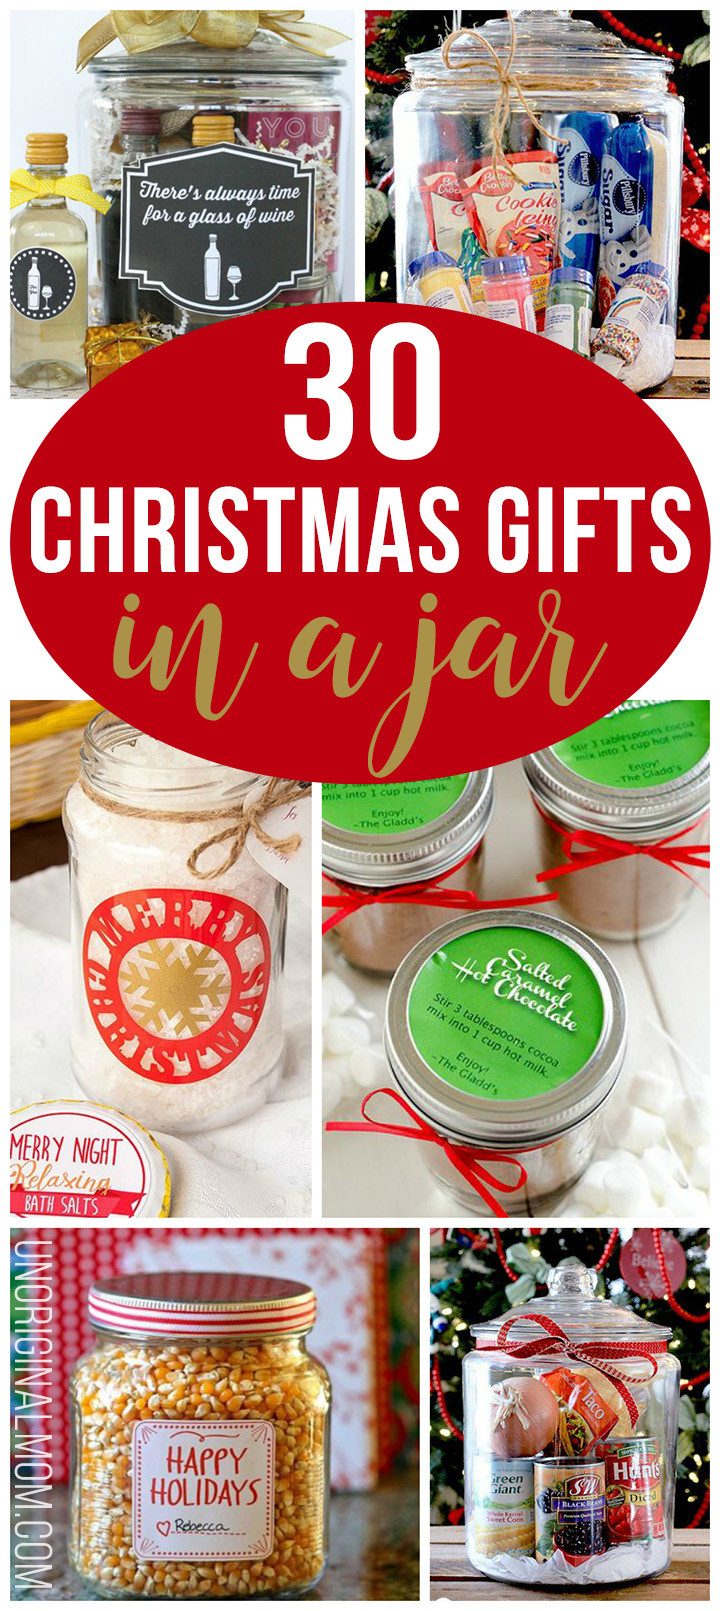 Best ideas about Unique Holiday Gift Ideas . Save or Pin 30 Christmas Gifts in a Jar unOriginal Mom Now.